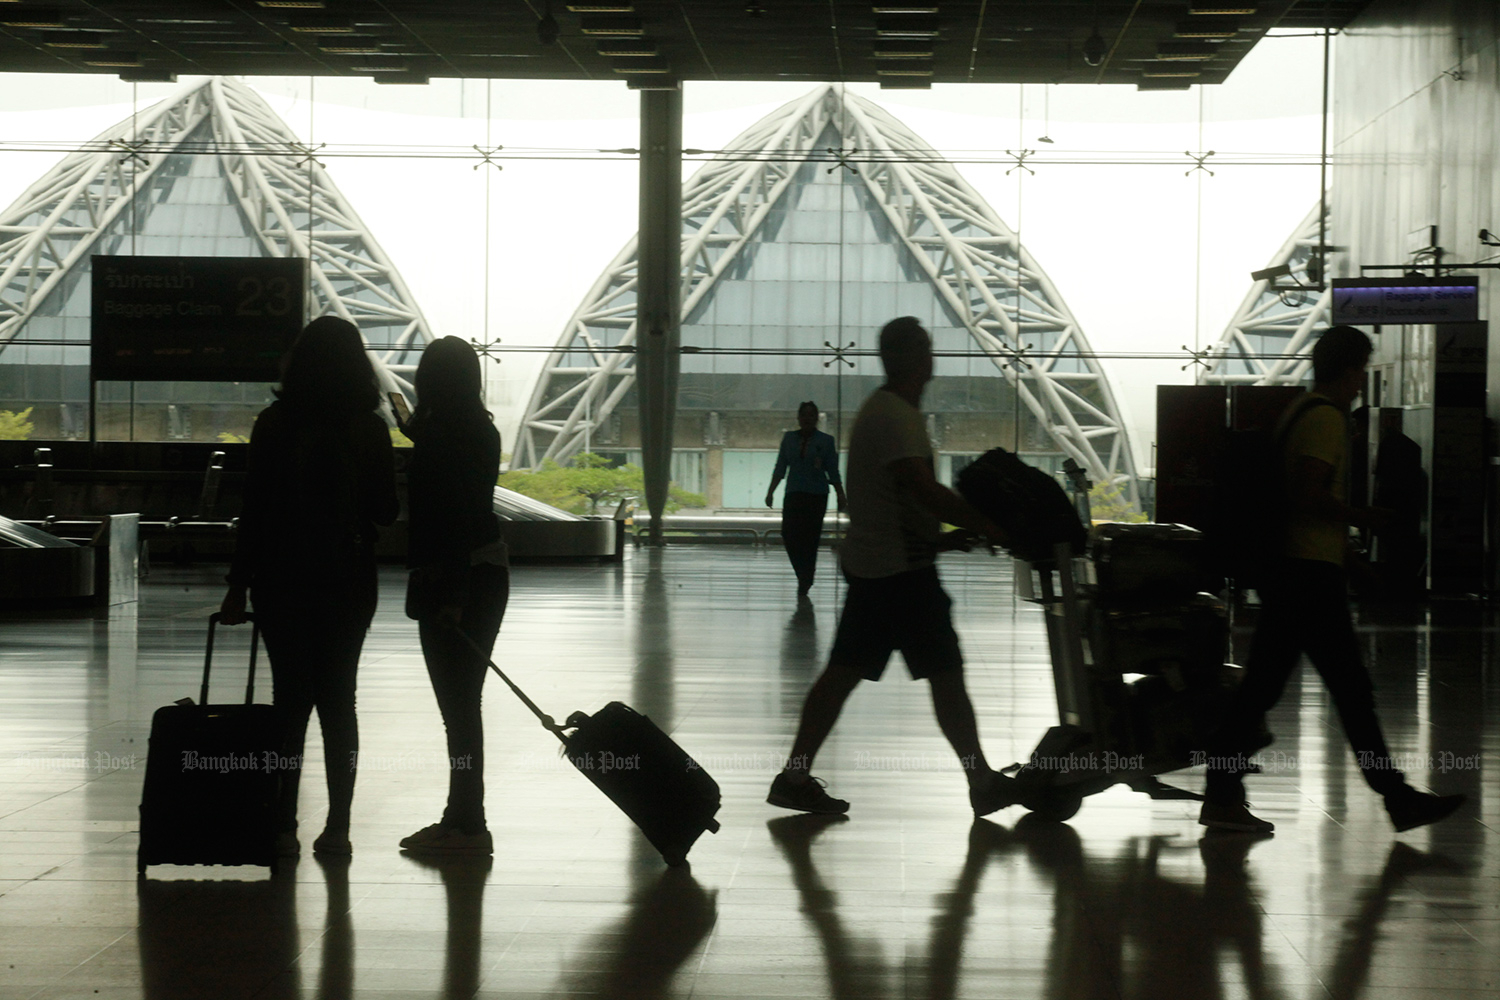 Suvarnabhumi is one of the most popular airports for charter flights to Thailand. (Bangkok Post photo)